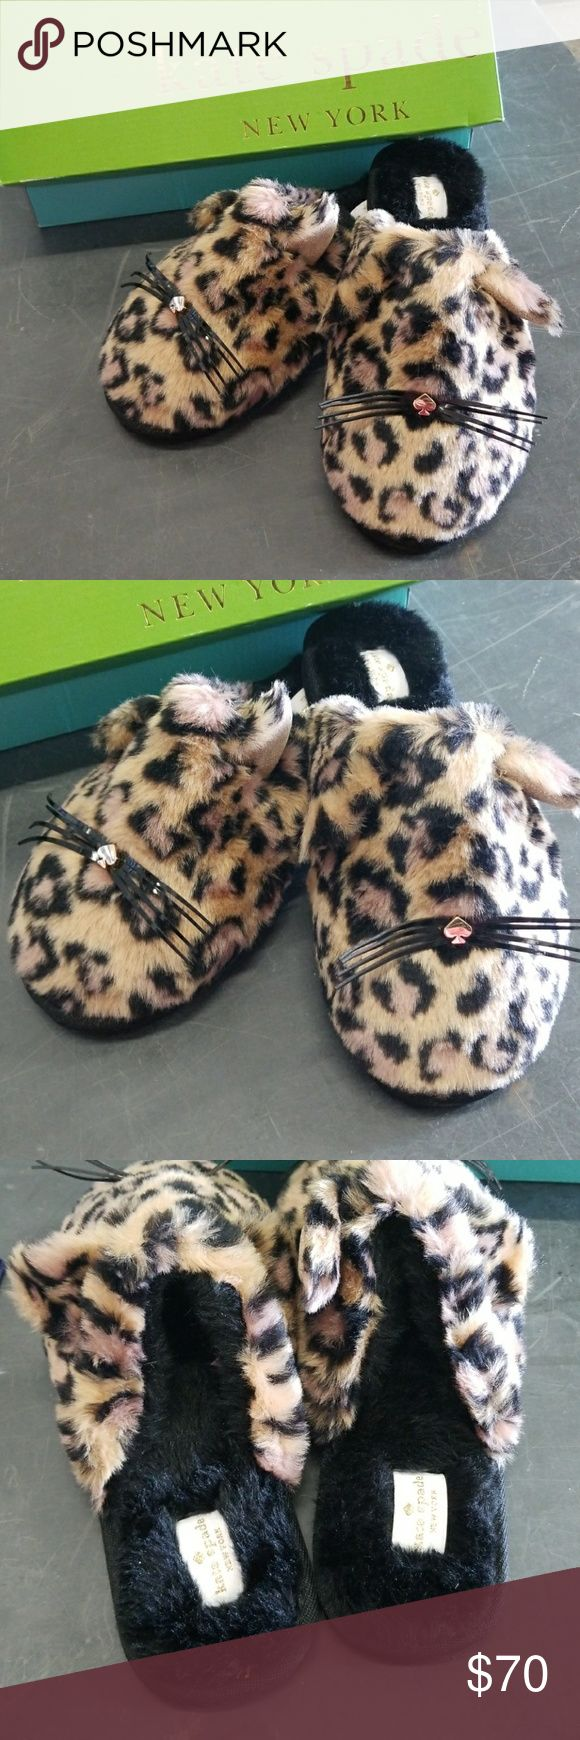 NWT Kate Spade Belindy Slippers Size 7 NWT Kate Spade Belindy Slippers Size 7. These are sold out on Kate Spade's website! Plush slippers finished with pretty kitty details and plush leopard printed fur. this pair is particularly purrfect for cooler temps. Check out my other items for sale, I have a ton!  *All earnings go to the victims of hurricane Maria in PR* kate spade Shoes Slippers